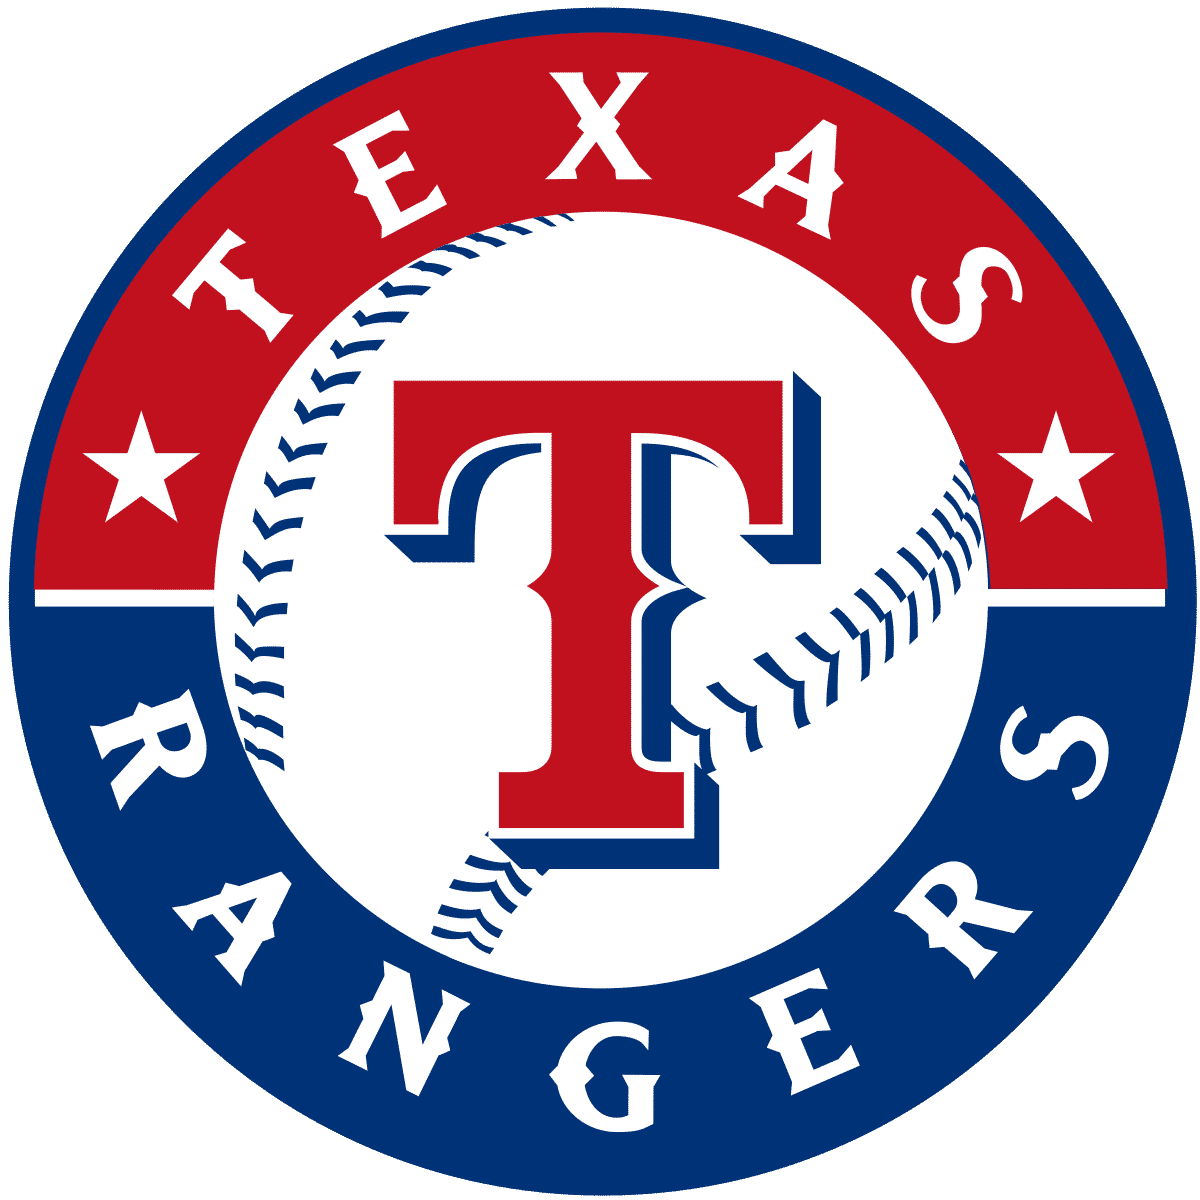 – Brian Nephews, Manager of Corporate Partnerships, Texas Rangers